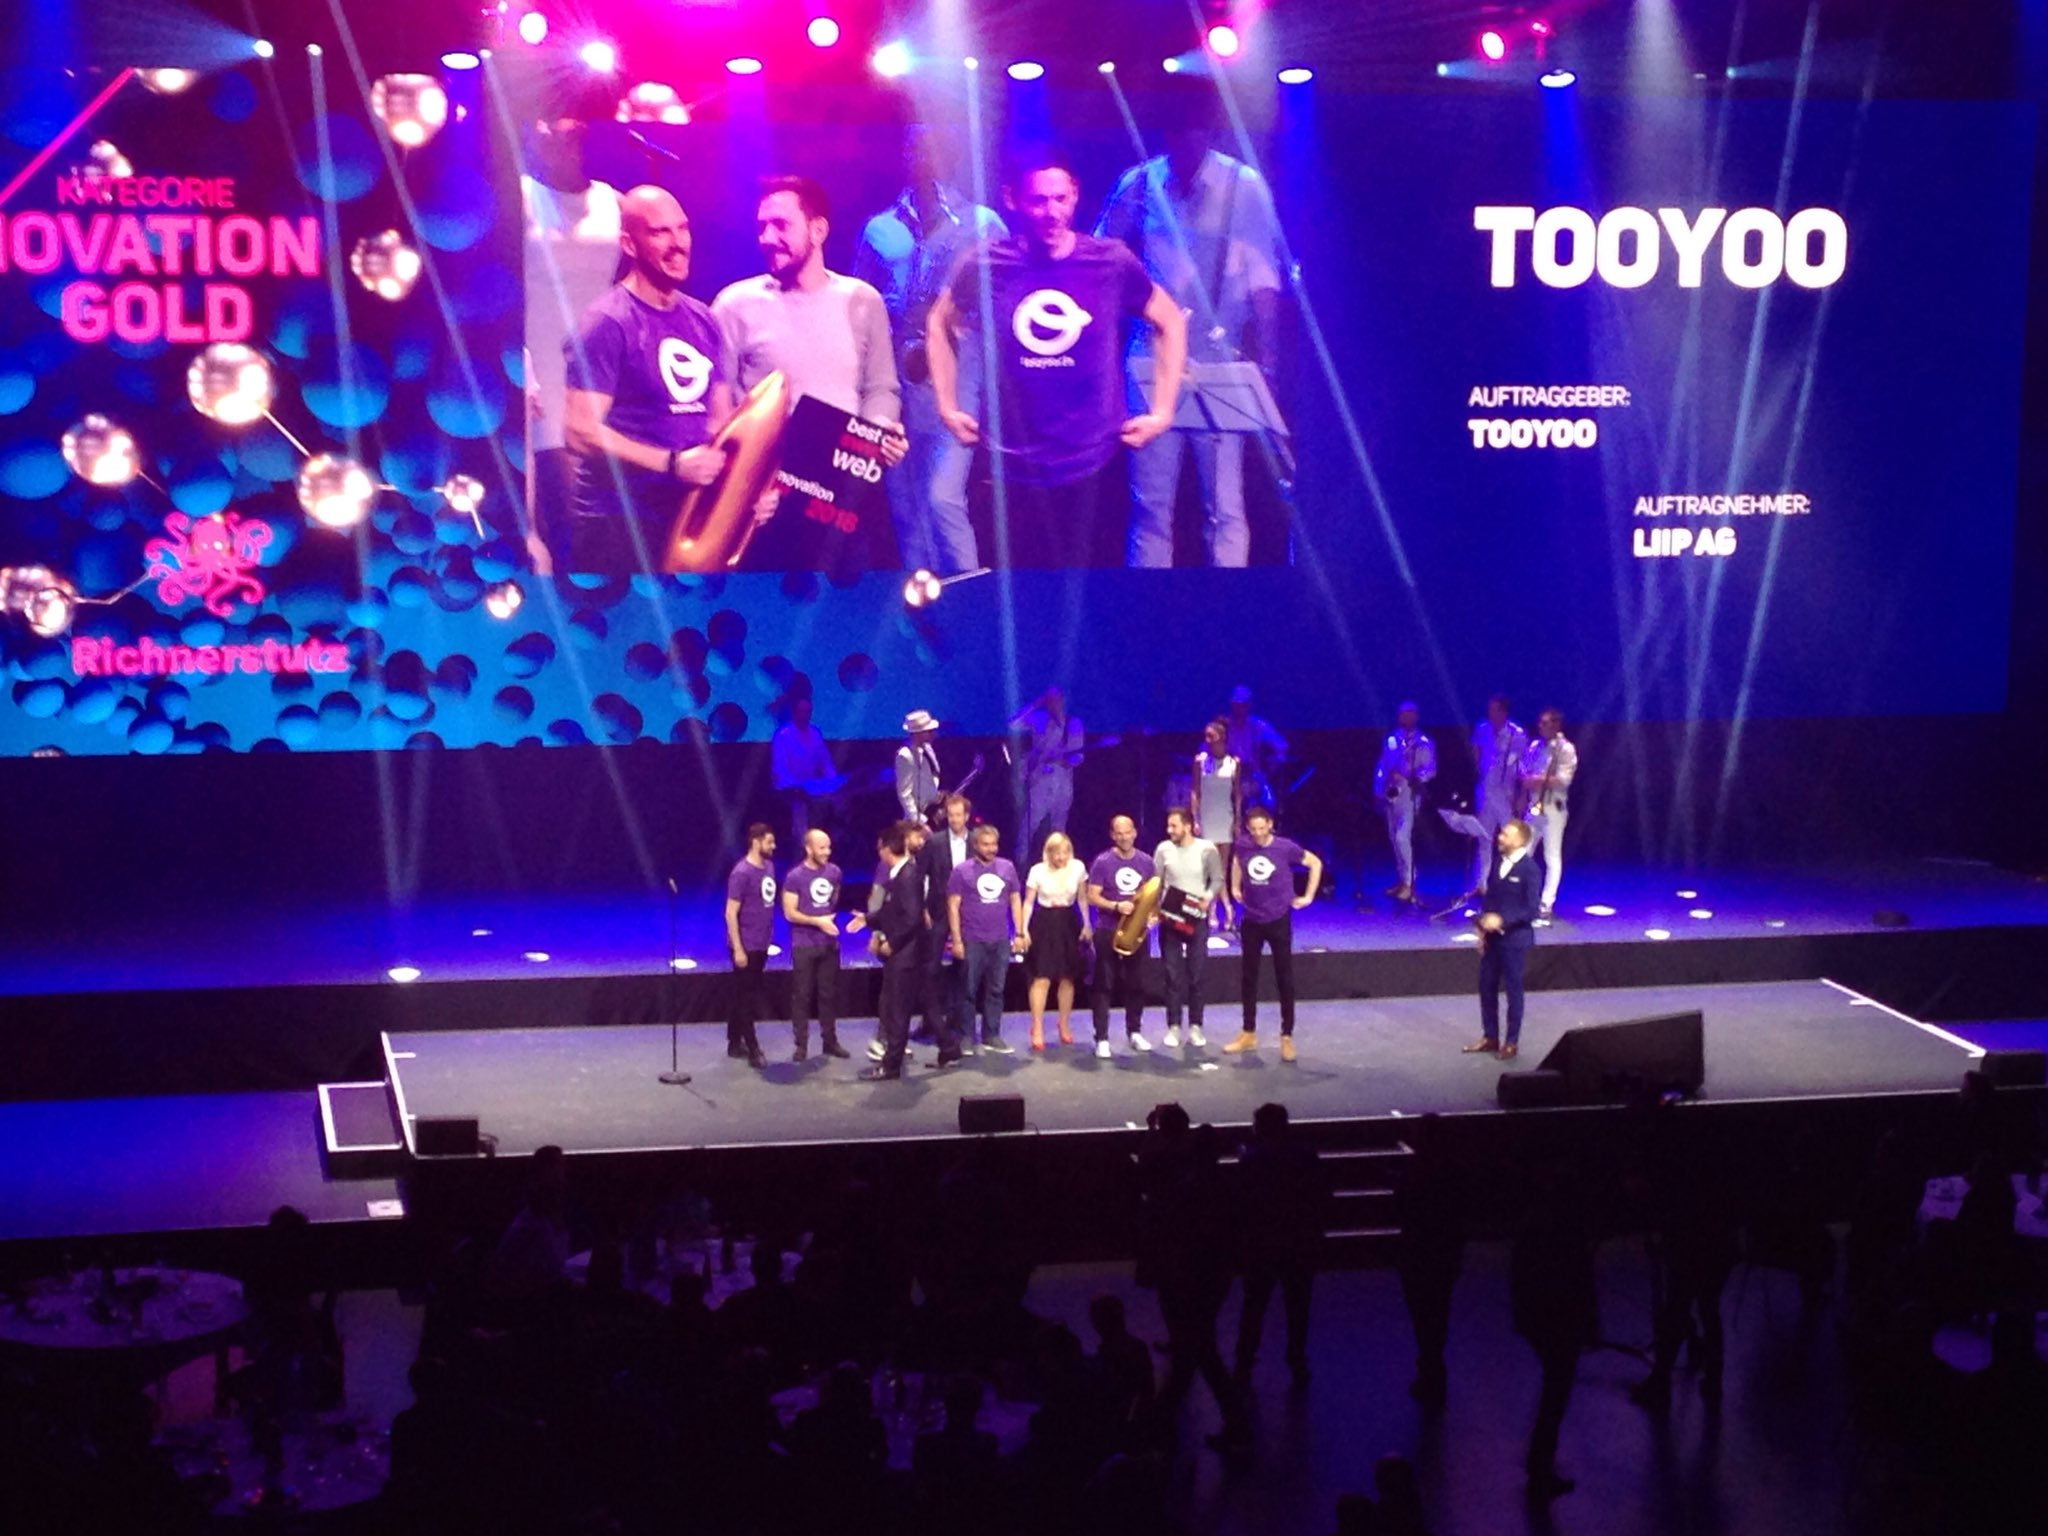 Gold award inovation tooyoo - best of swiss web 2018